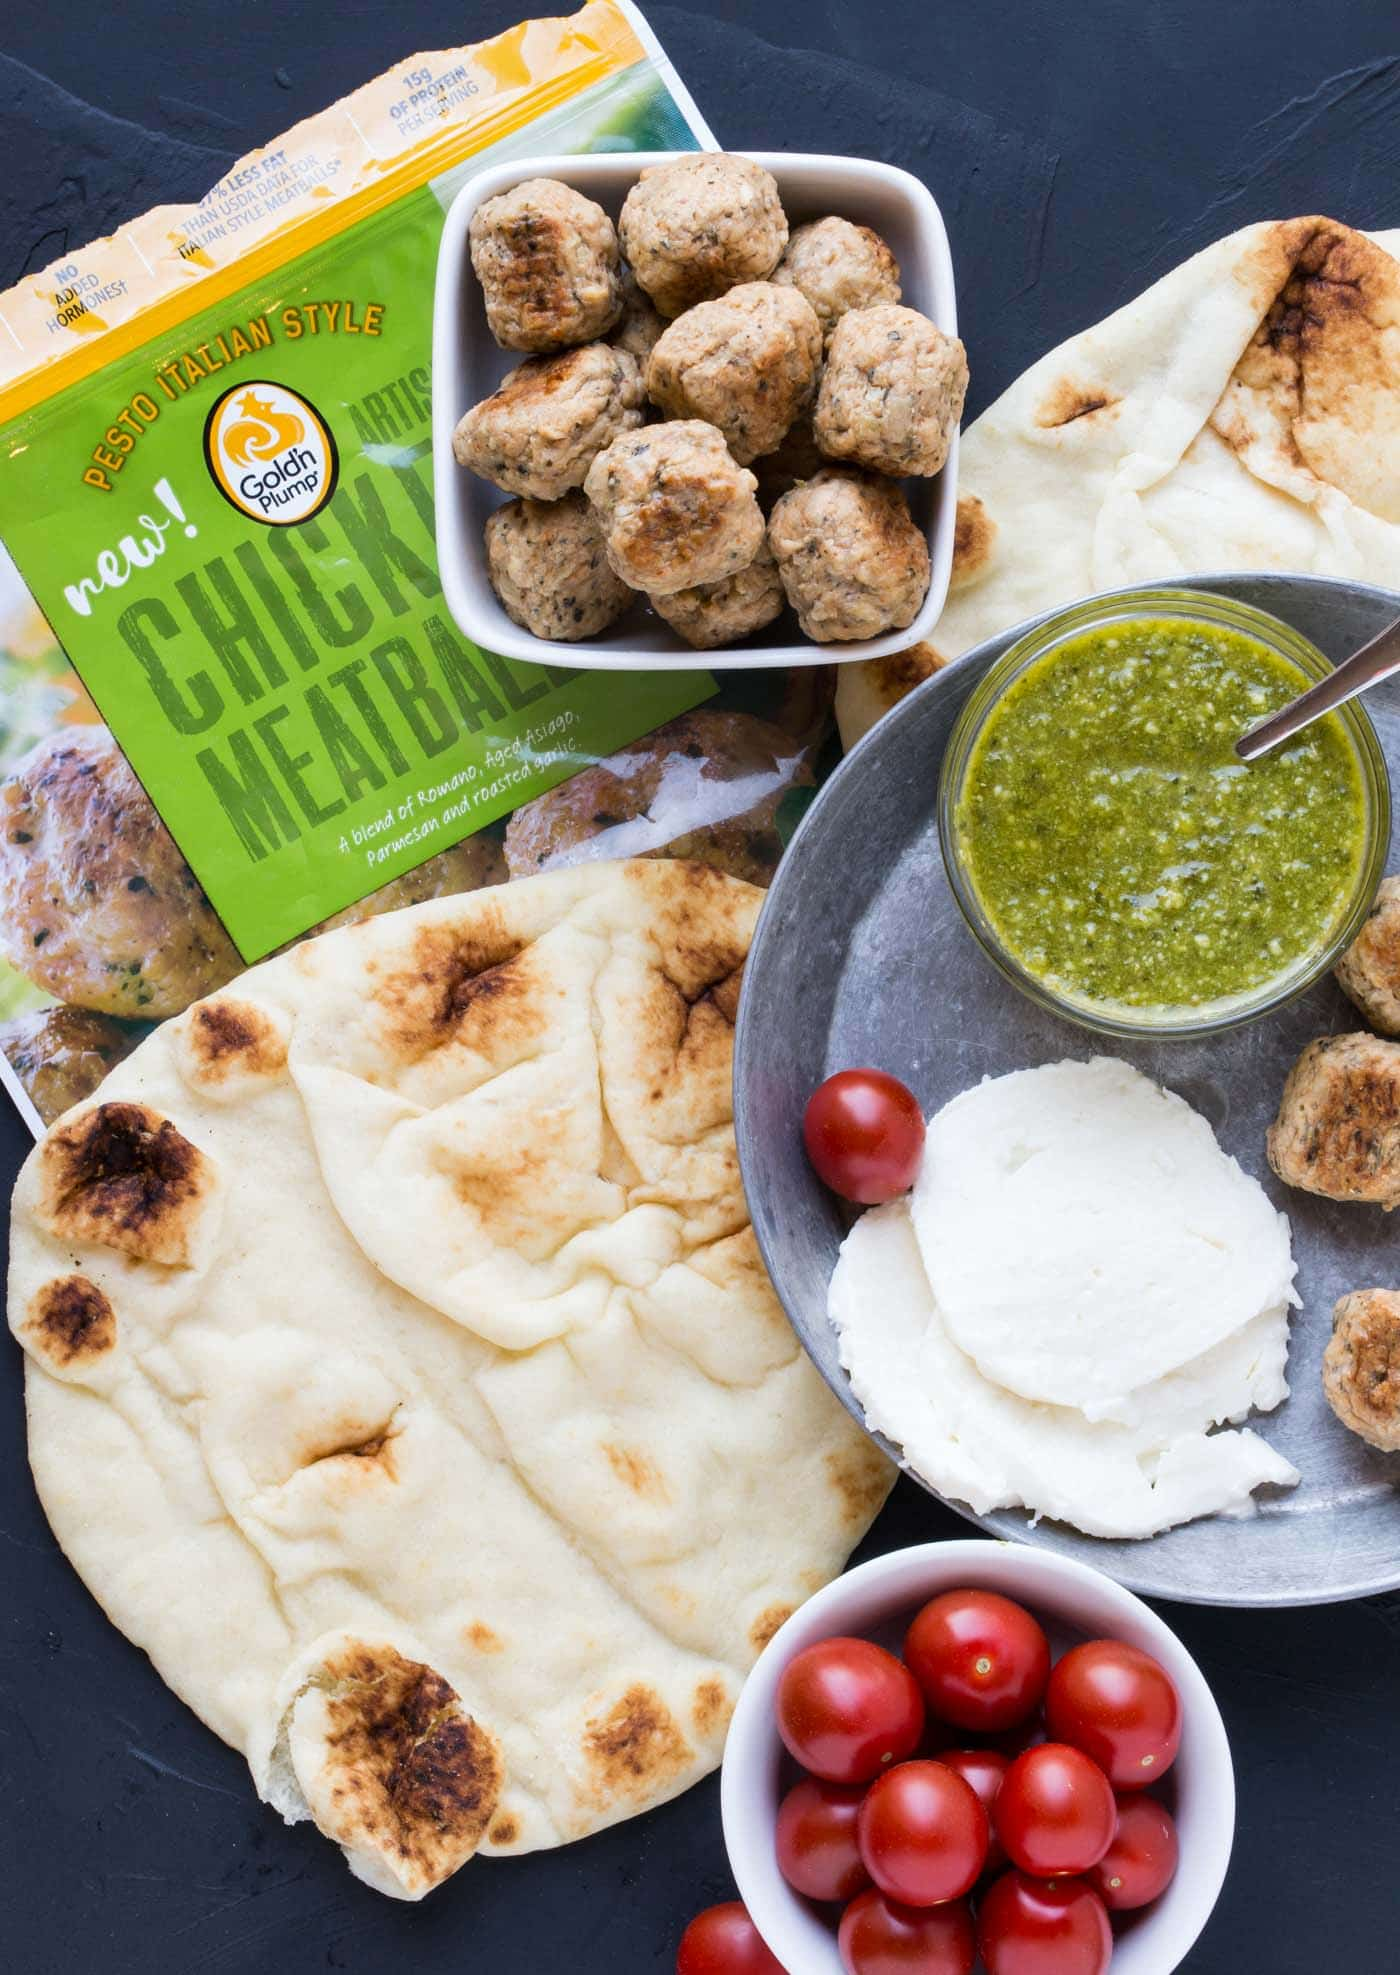 Need a quick and easy recipe for your impromptu happy hour? This Pesto Meatball Flatbread recipe delivers big flavor in less than 20 minutes!